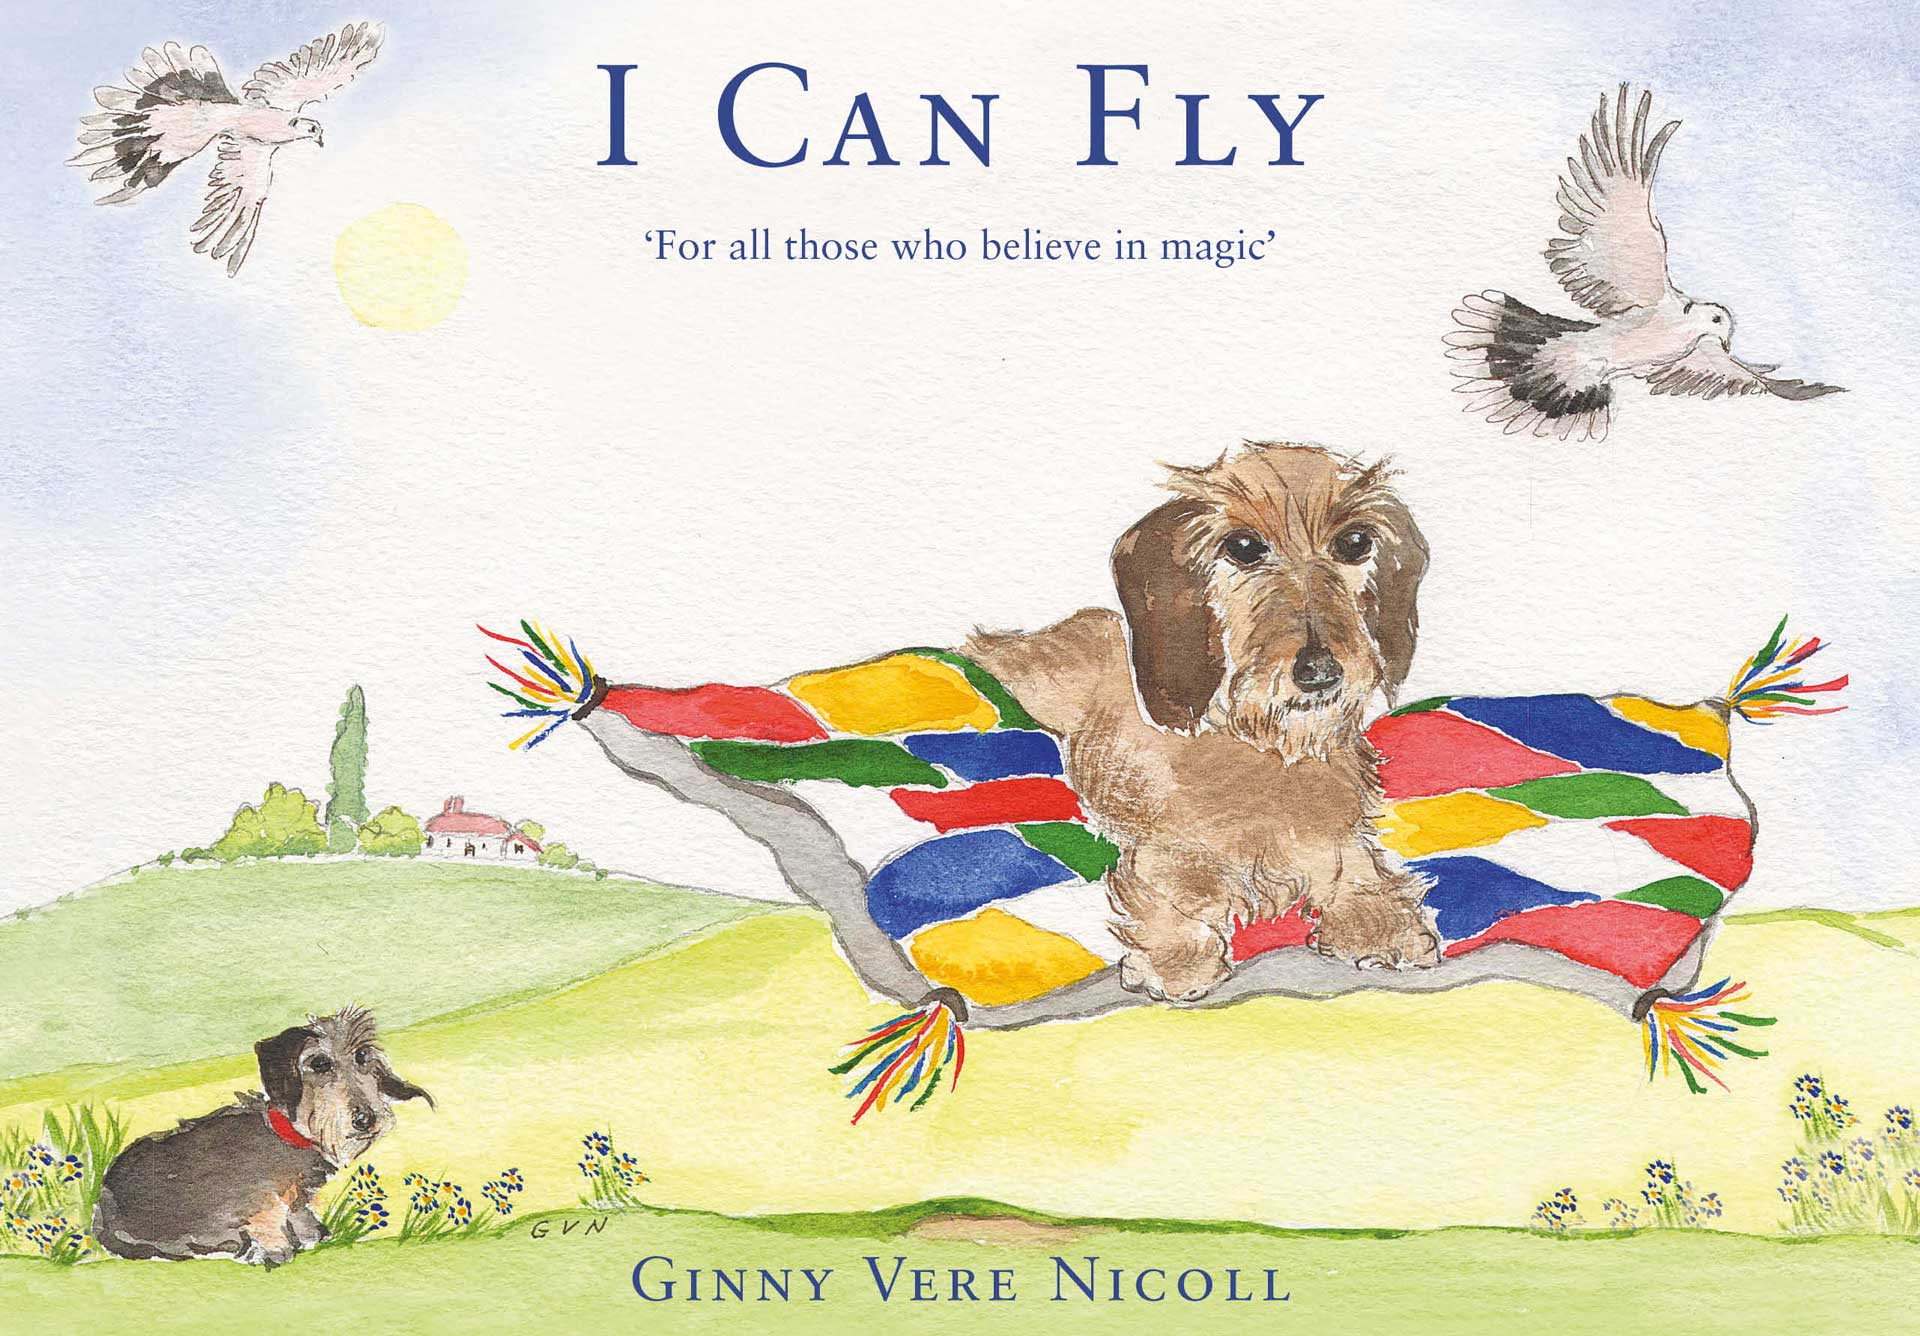 I Can Fly by Ginnny Vere Nicoll